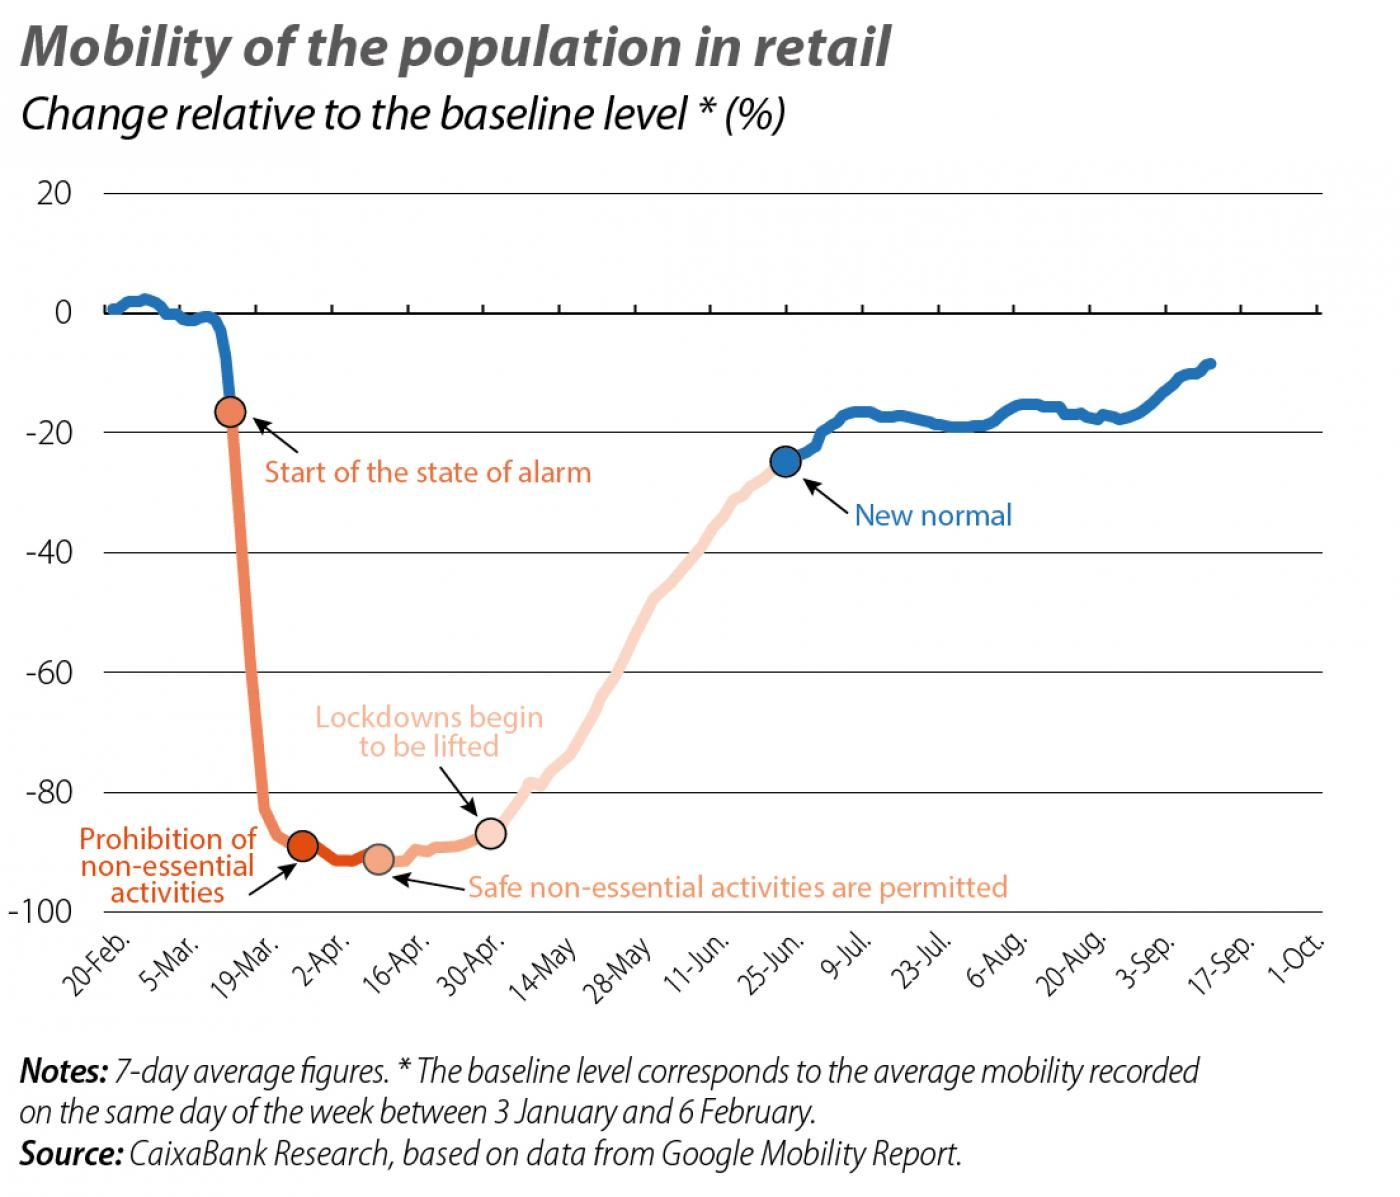 Mobility of the population in retail